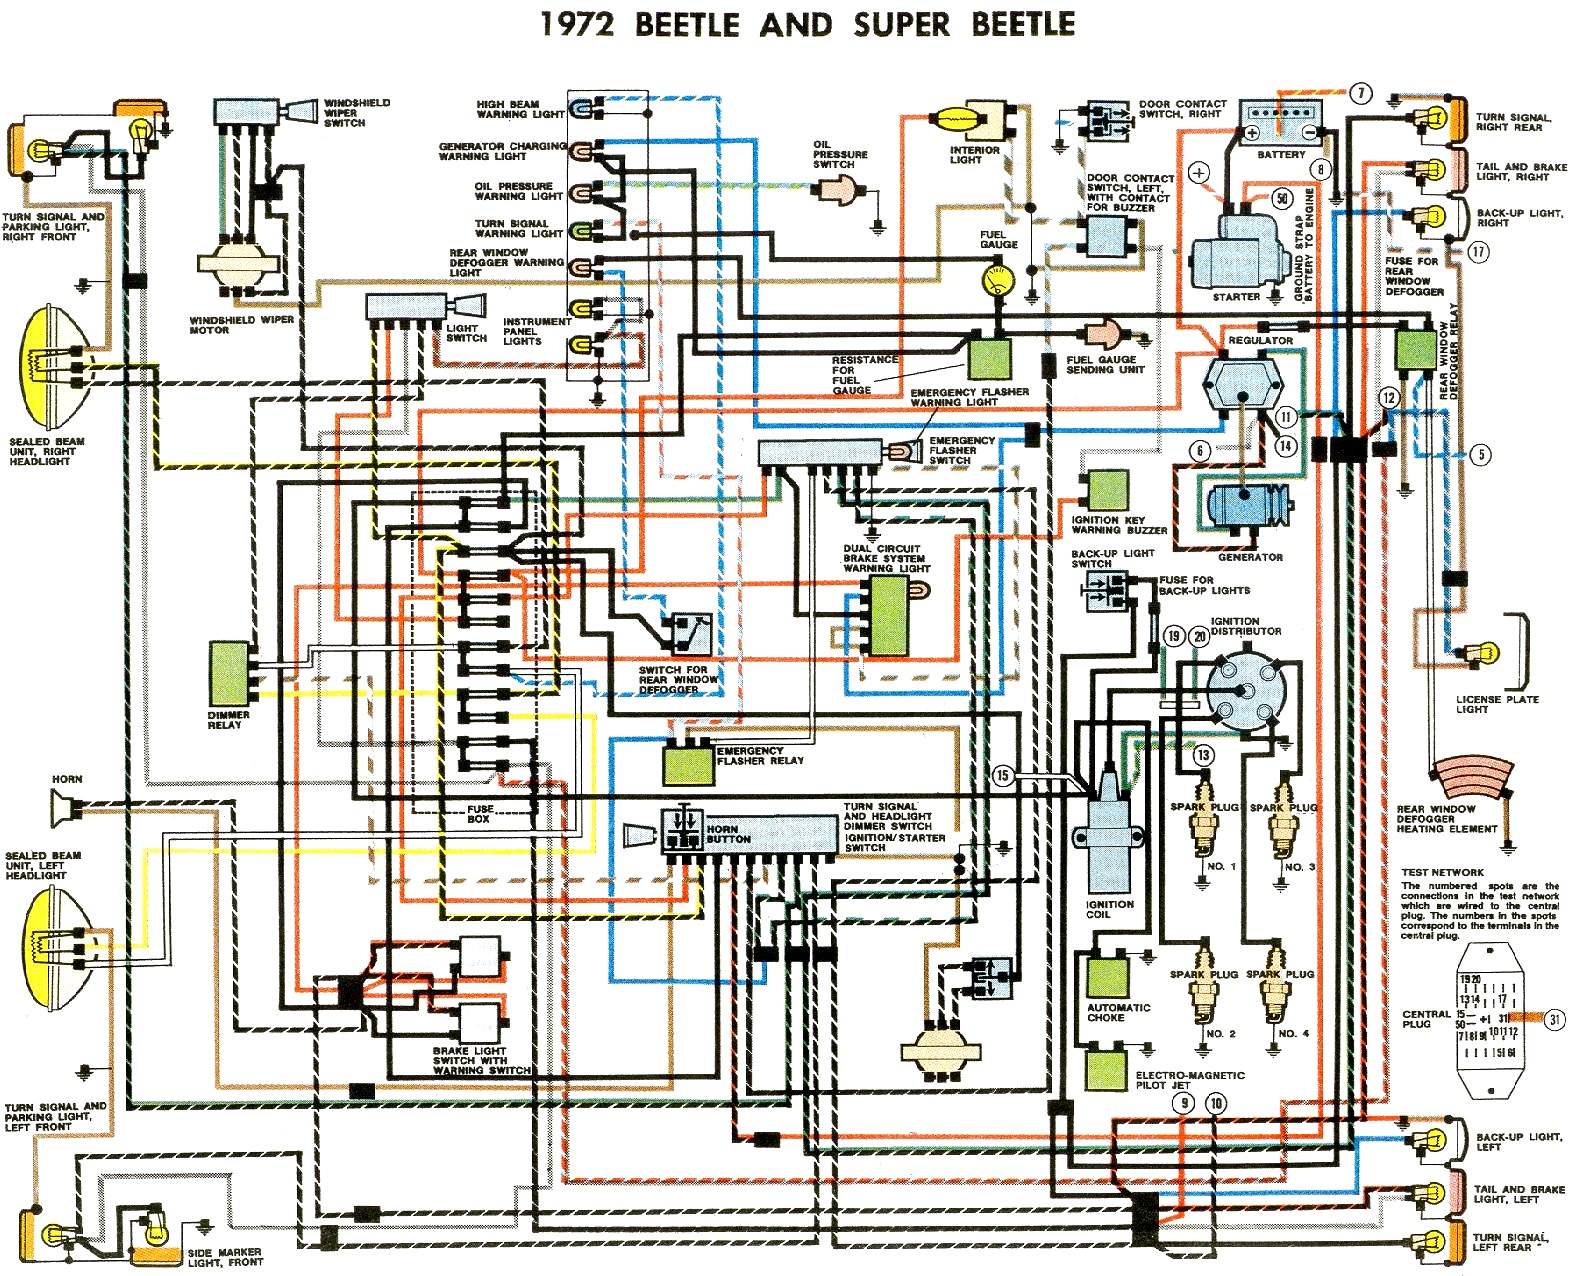 bug_72 1972 beetle wiring diagram thegoldenbug com 1973 vw beetle wiring diagram at virtualis.co